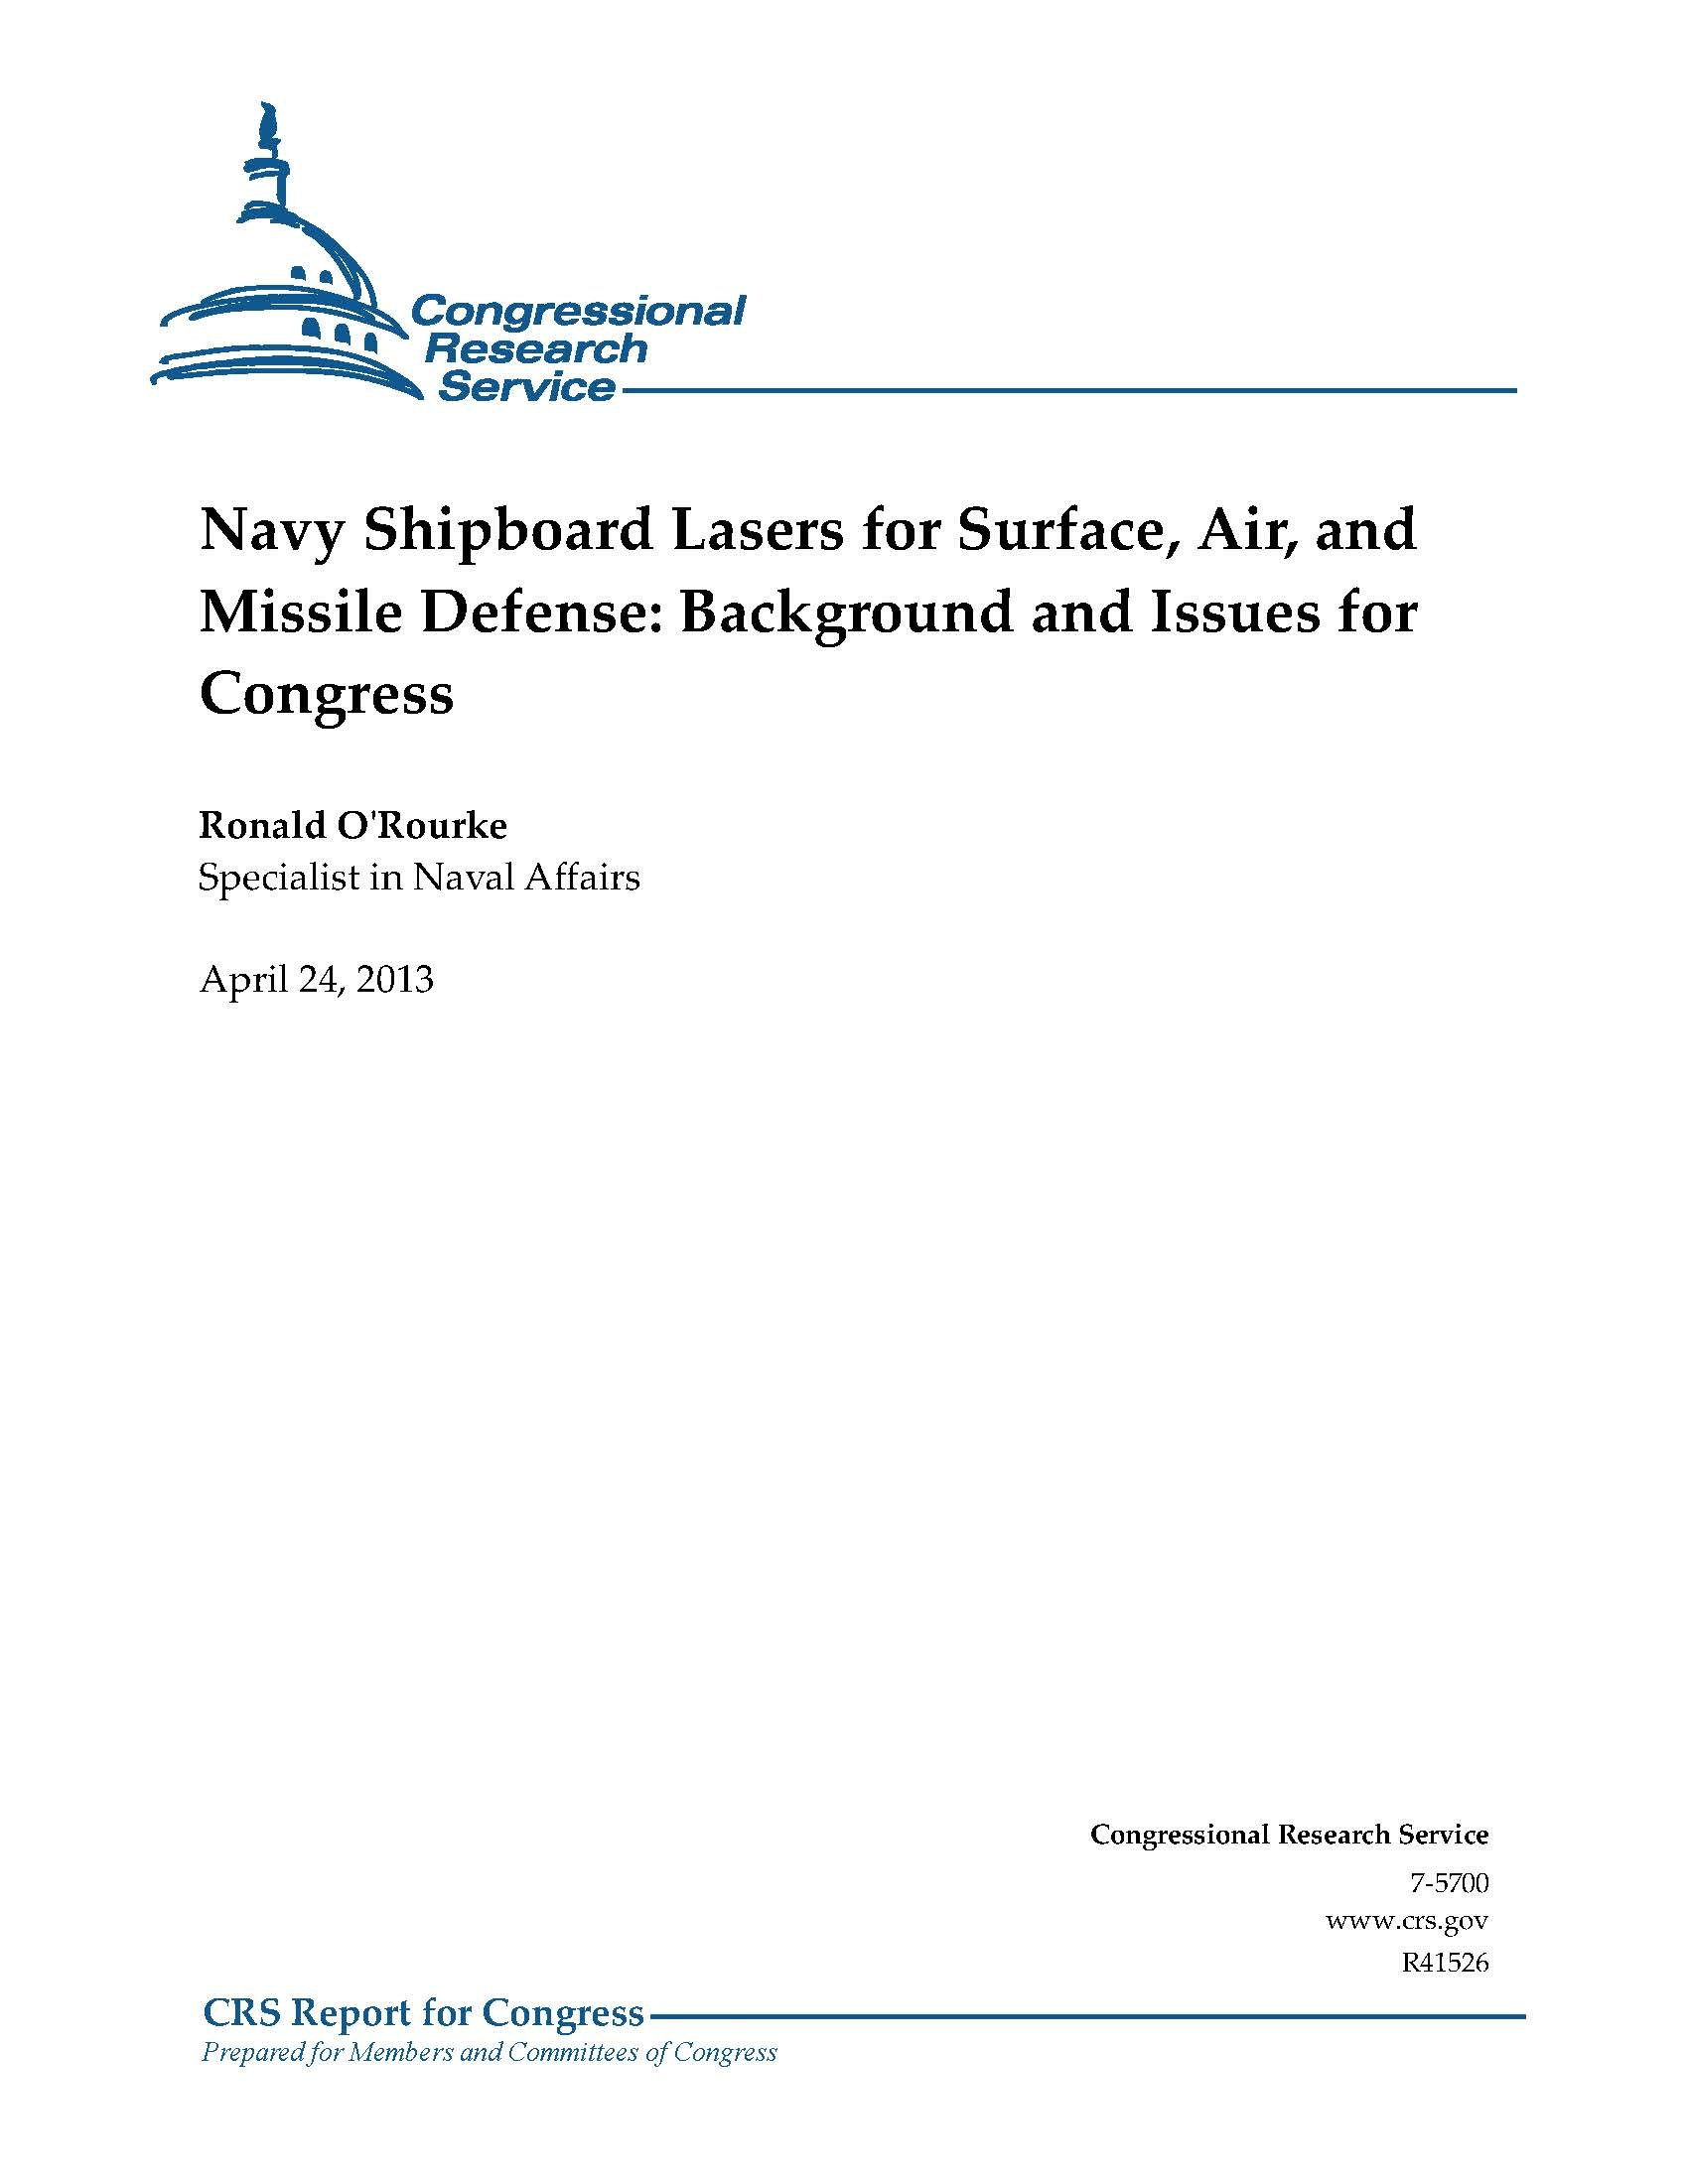 Download Navy Shipboard Lasers for Surface, Air, and Missile Defense: Background and Issues for Congress. CRS Report for Congress. April 24, 2013 [Loose Leaf Edition] pdf